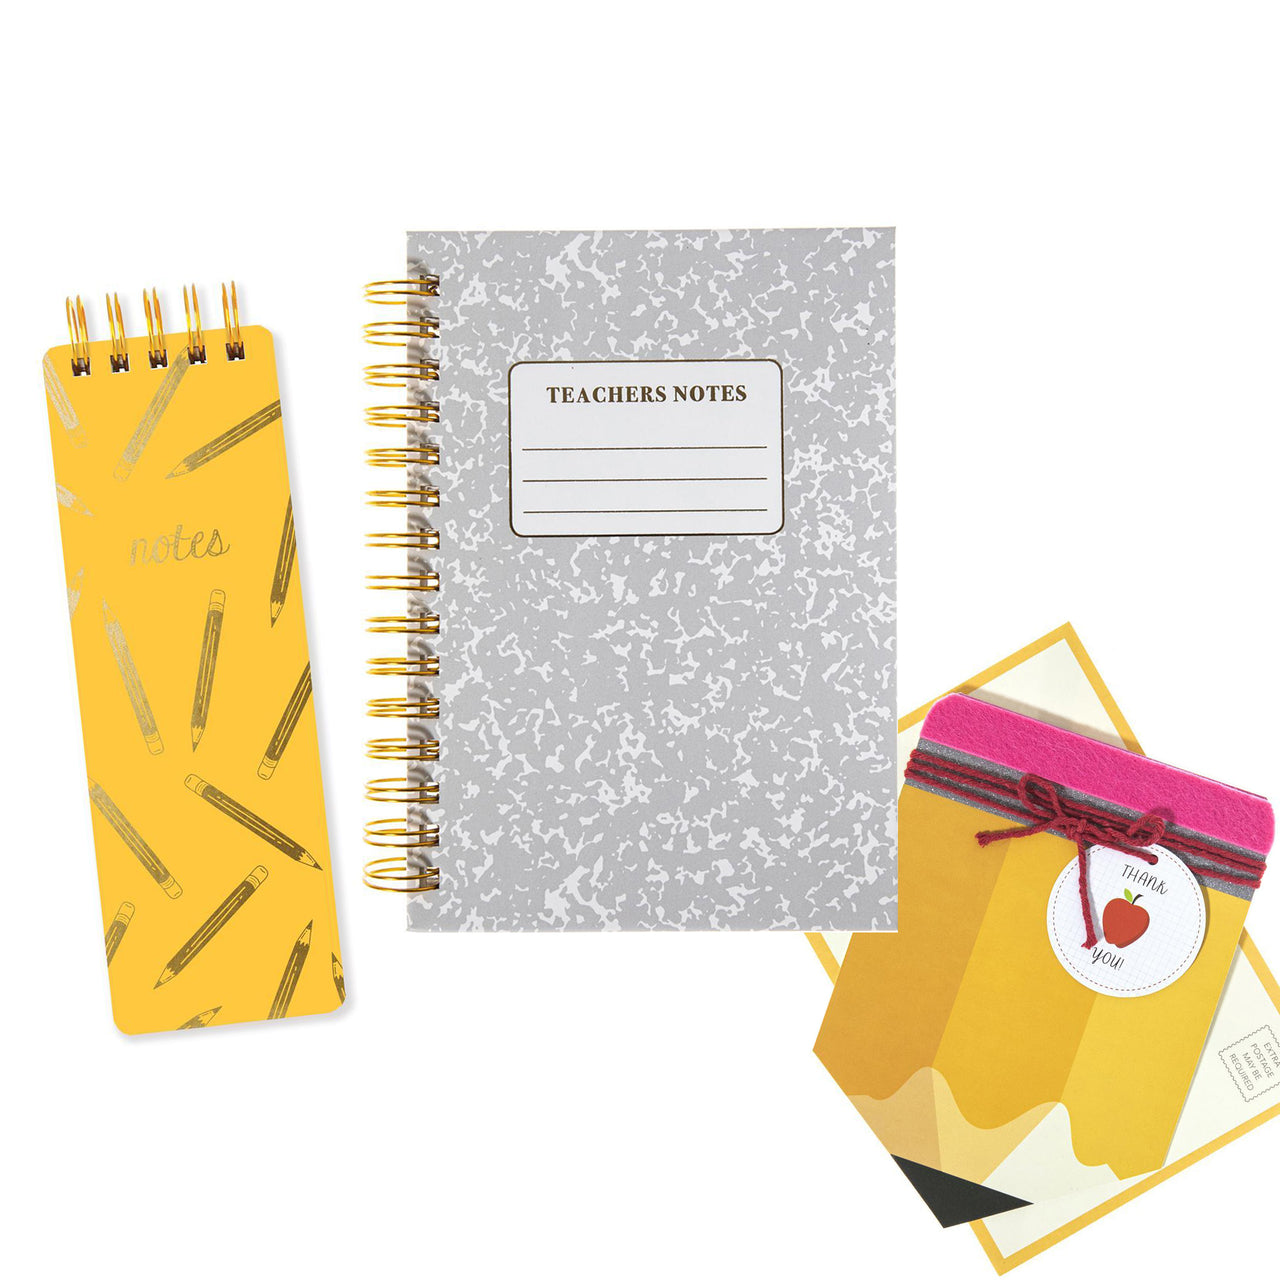 Teachers Desk Gift Set ($31.00 Value)